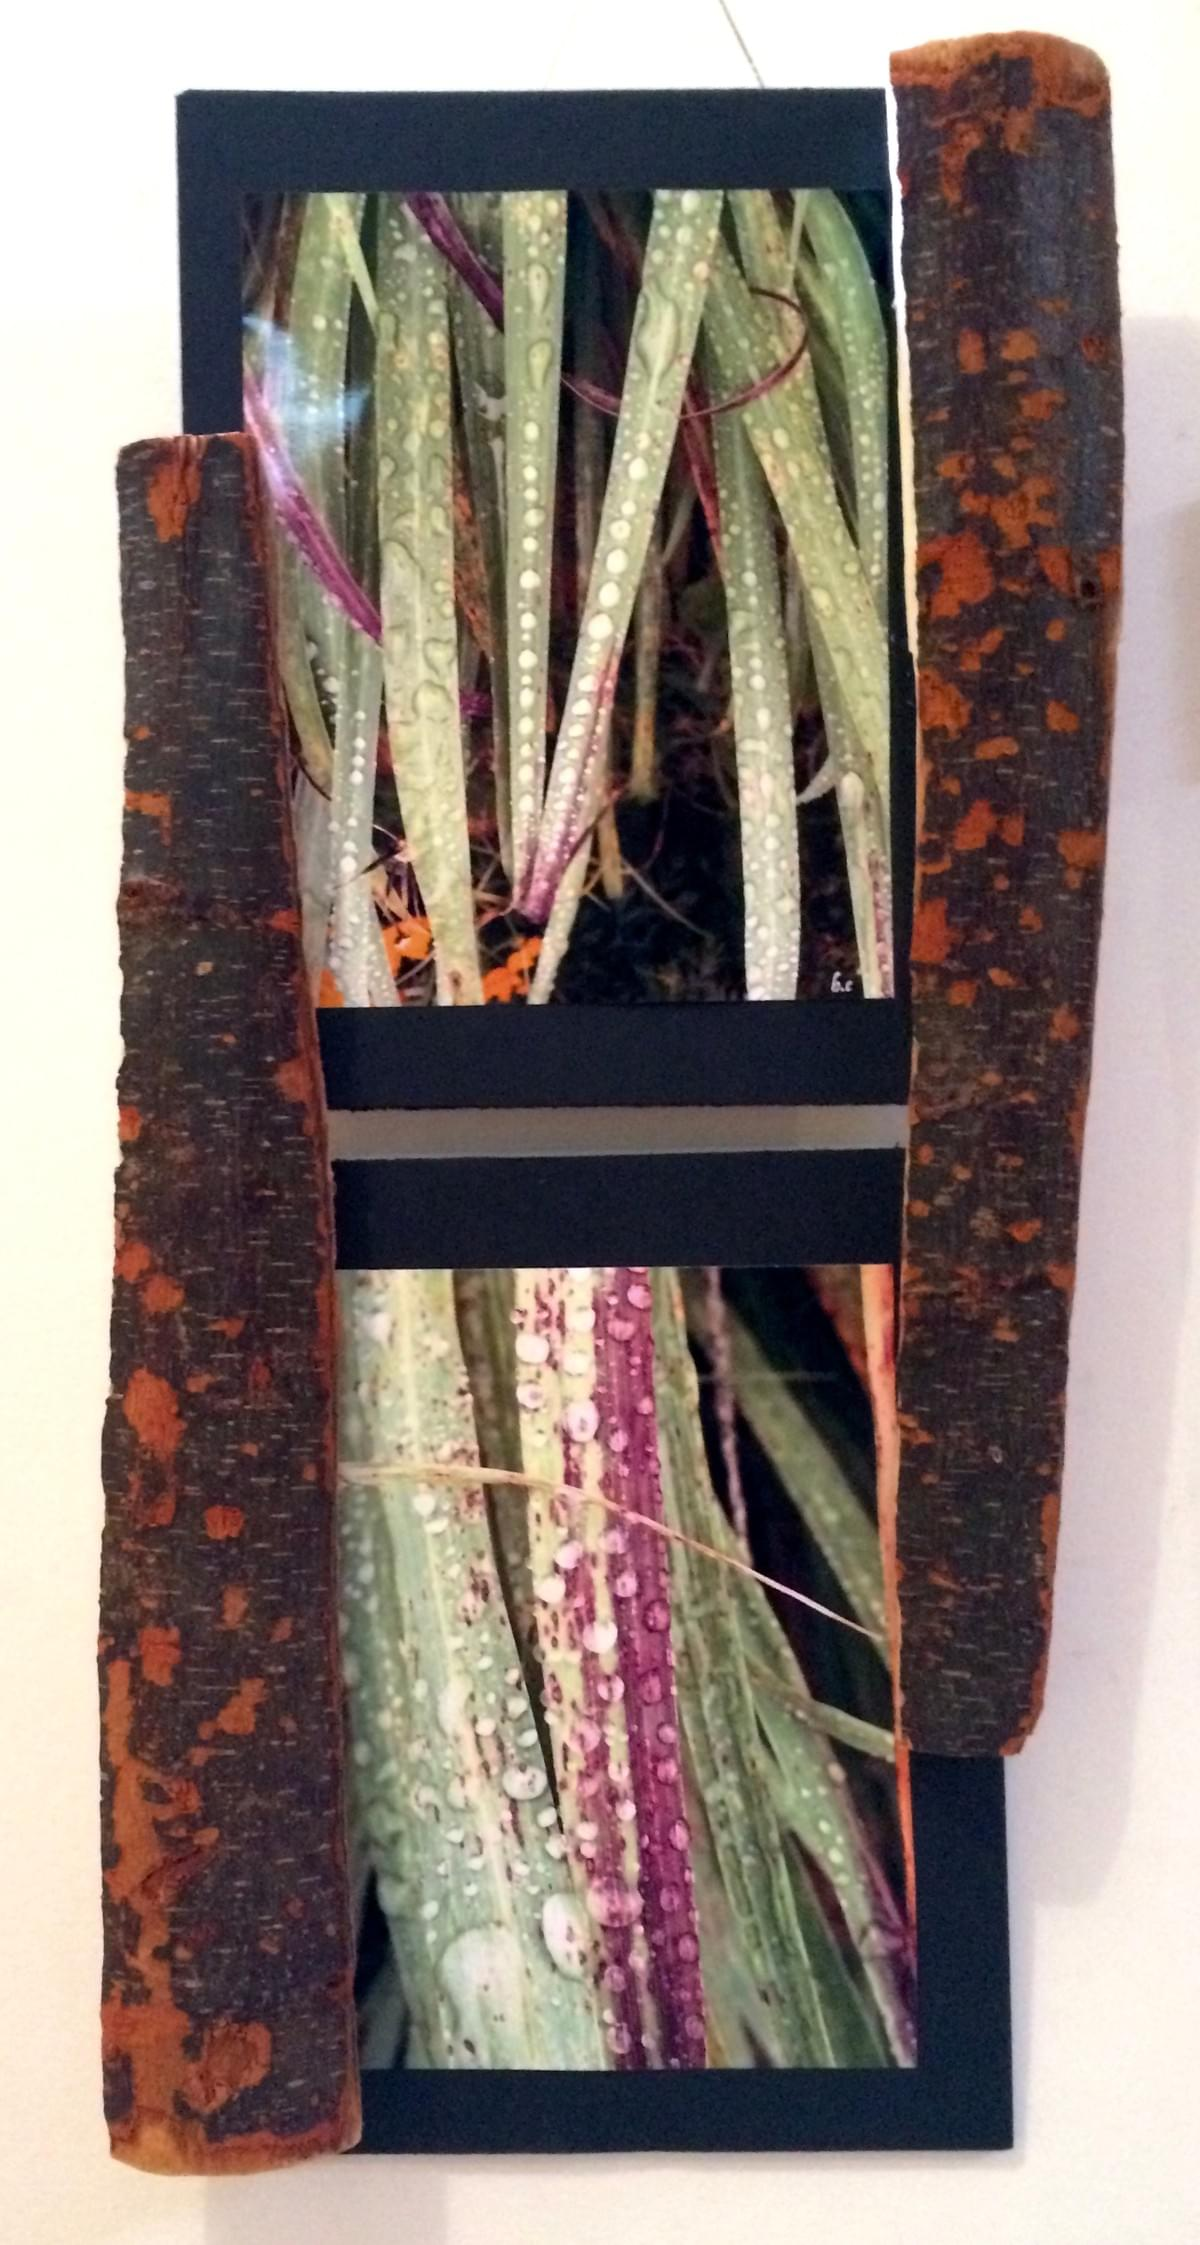 These photos were taken after a sudden rain shower in Maui, Hawaii late spring of 2016. Rain and sun are constant companions in the tropics, and make for beautiful bejeweled reflections. The frame was fashioned from an arbutus trunk washed up here in Victoria from the Salish Sea.